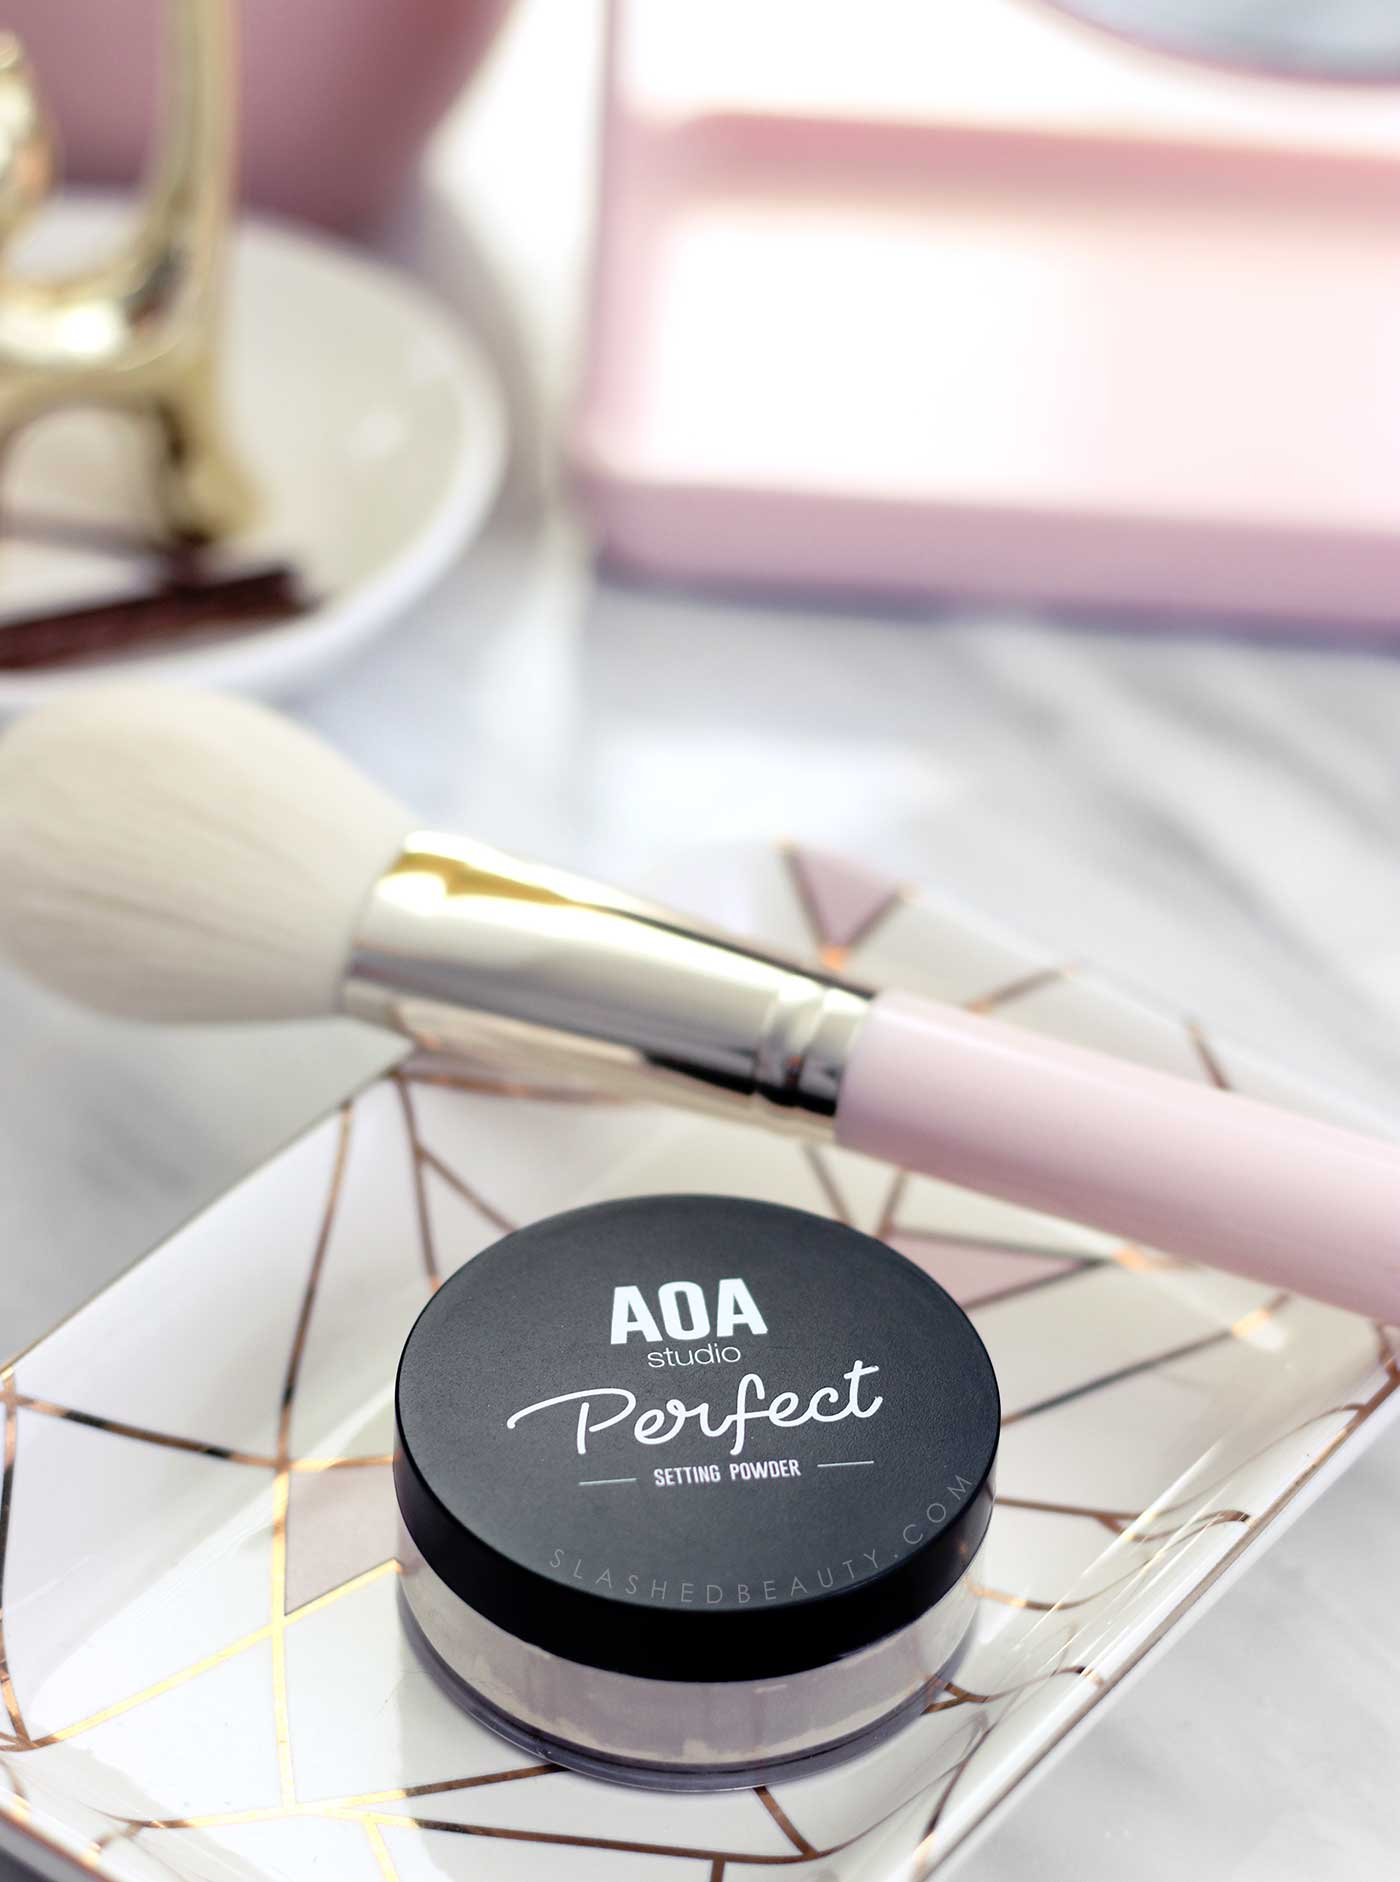 AOA Perfect Setting Powder Review | Best Powder for Baking on a Budget | Affordable Makeup Setting Powder | Slashed Beauty